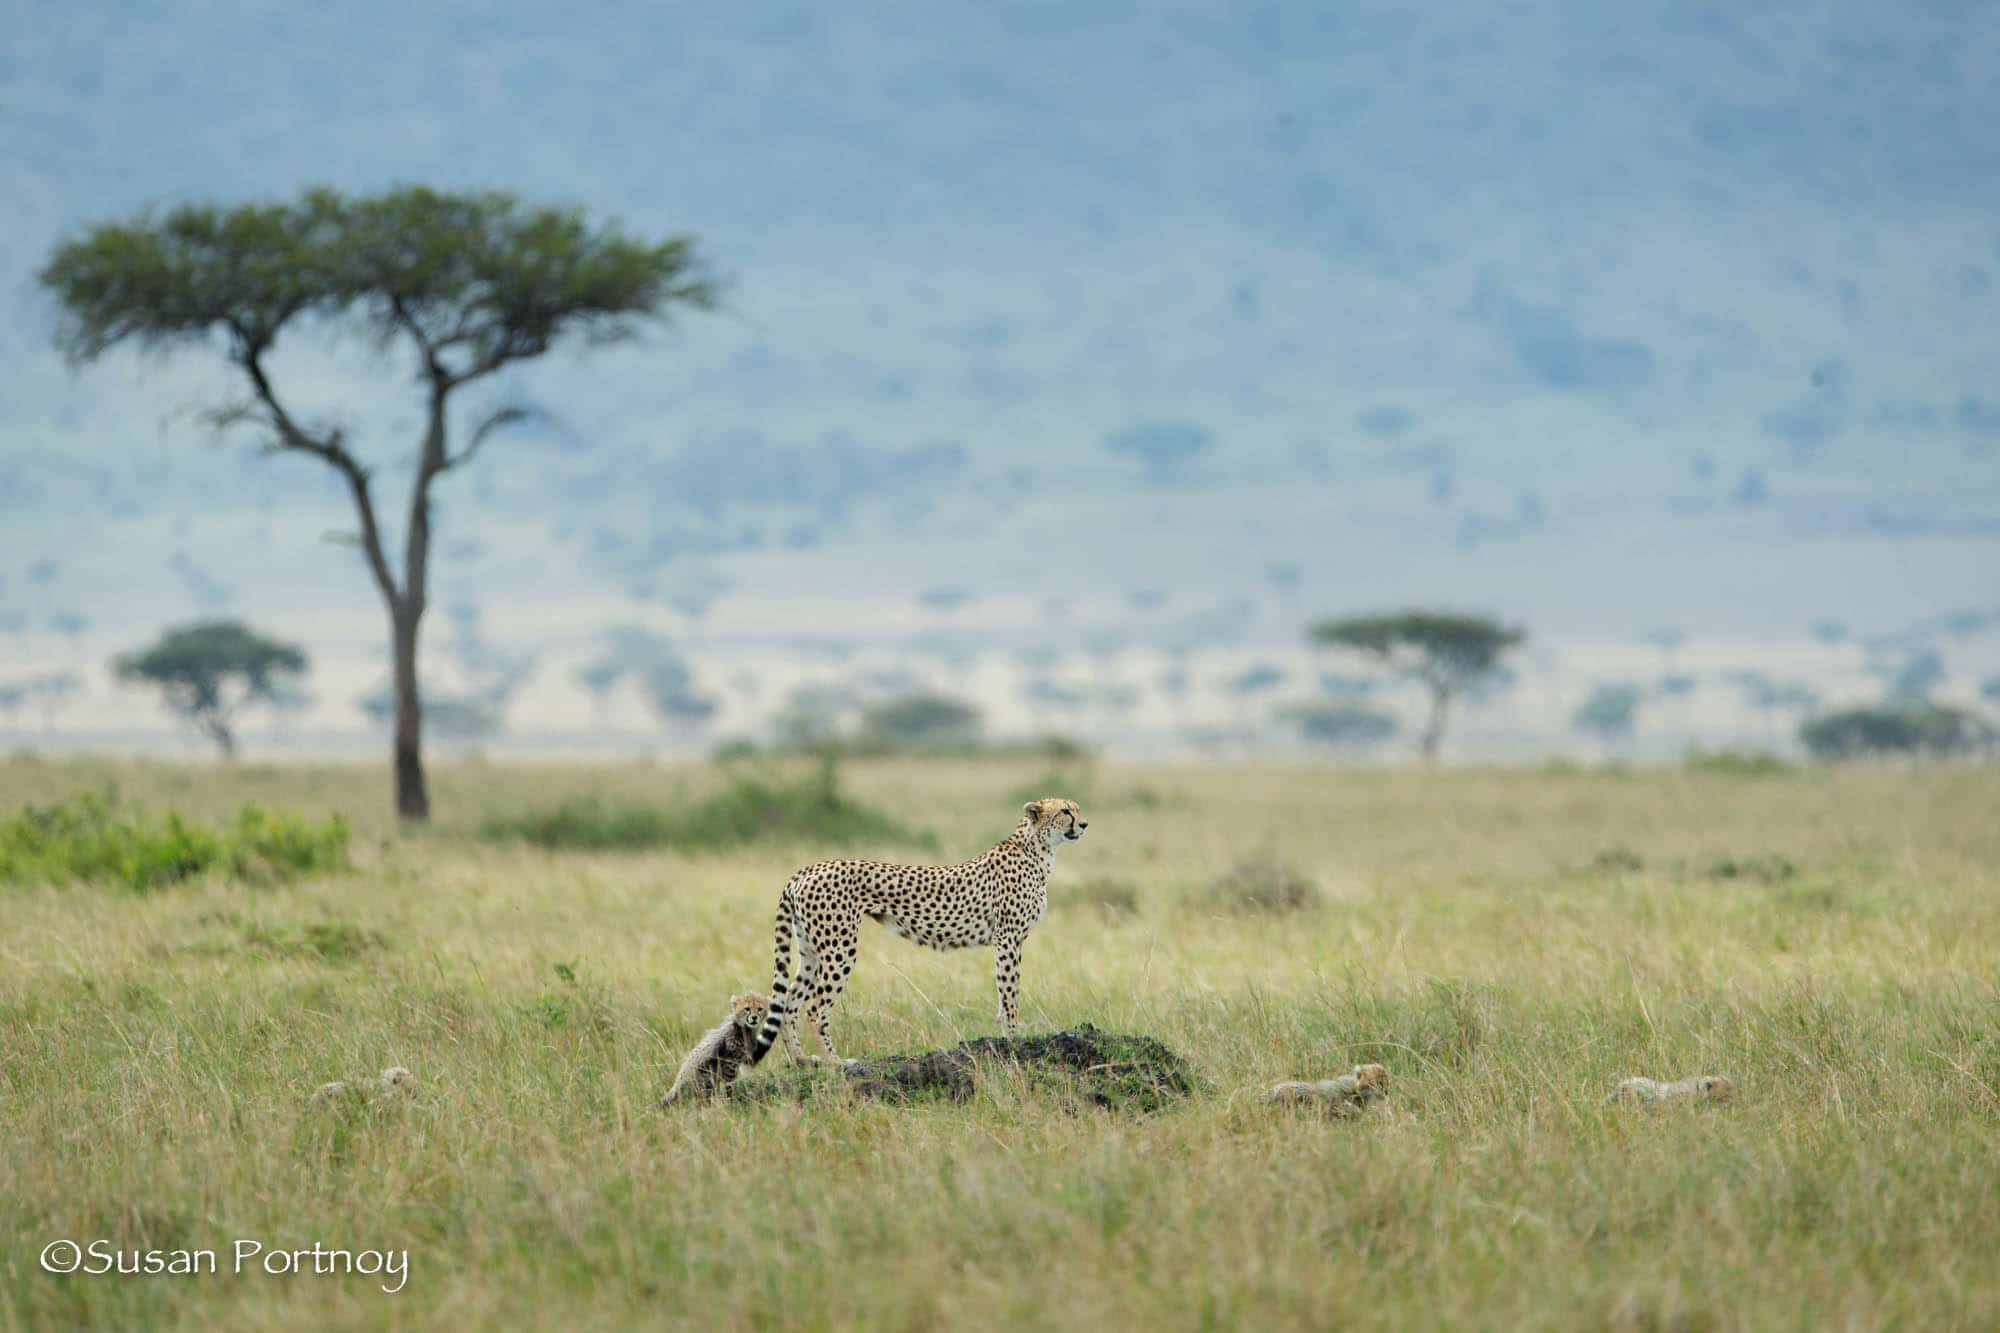 Cheetah mother with her cubs in the Masai Mara, Kenya